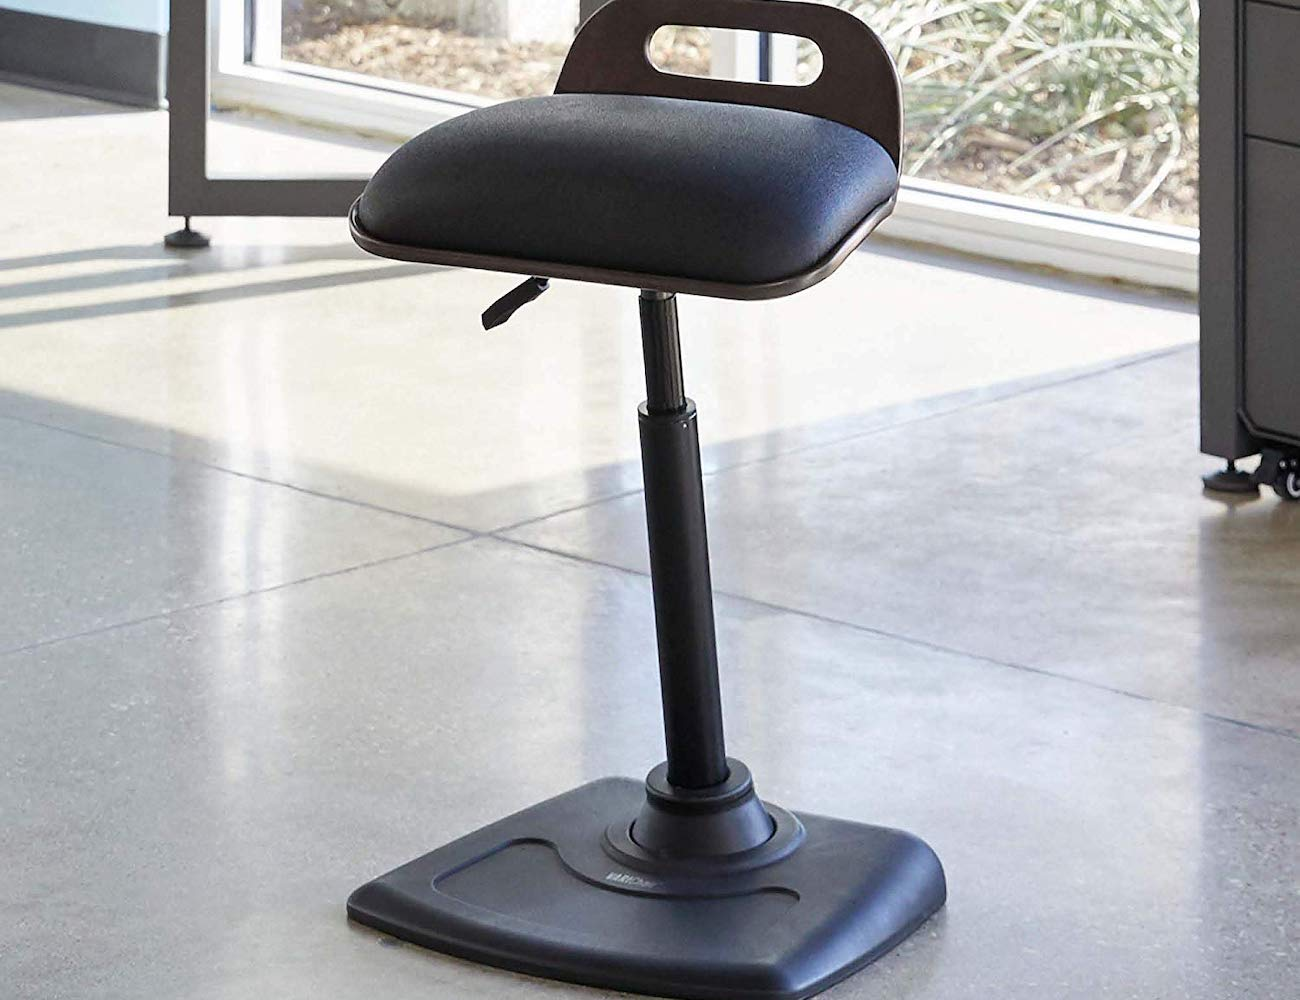 VARIChair Pro Standing Desk Chair » Gadget Flow